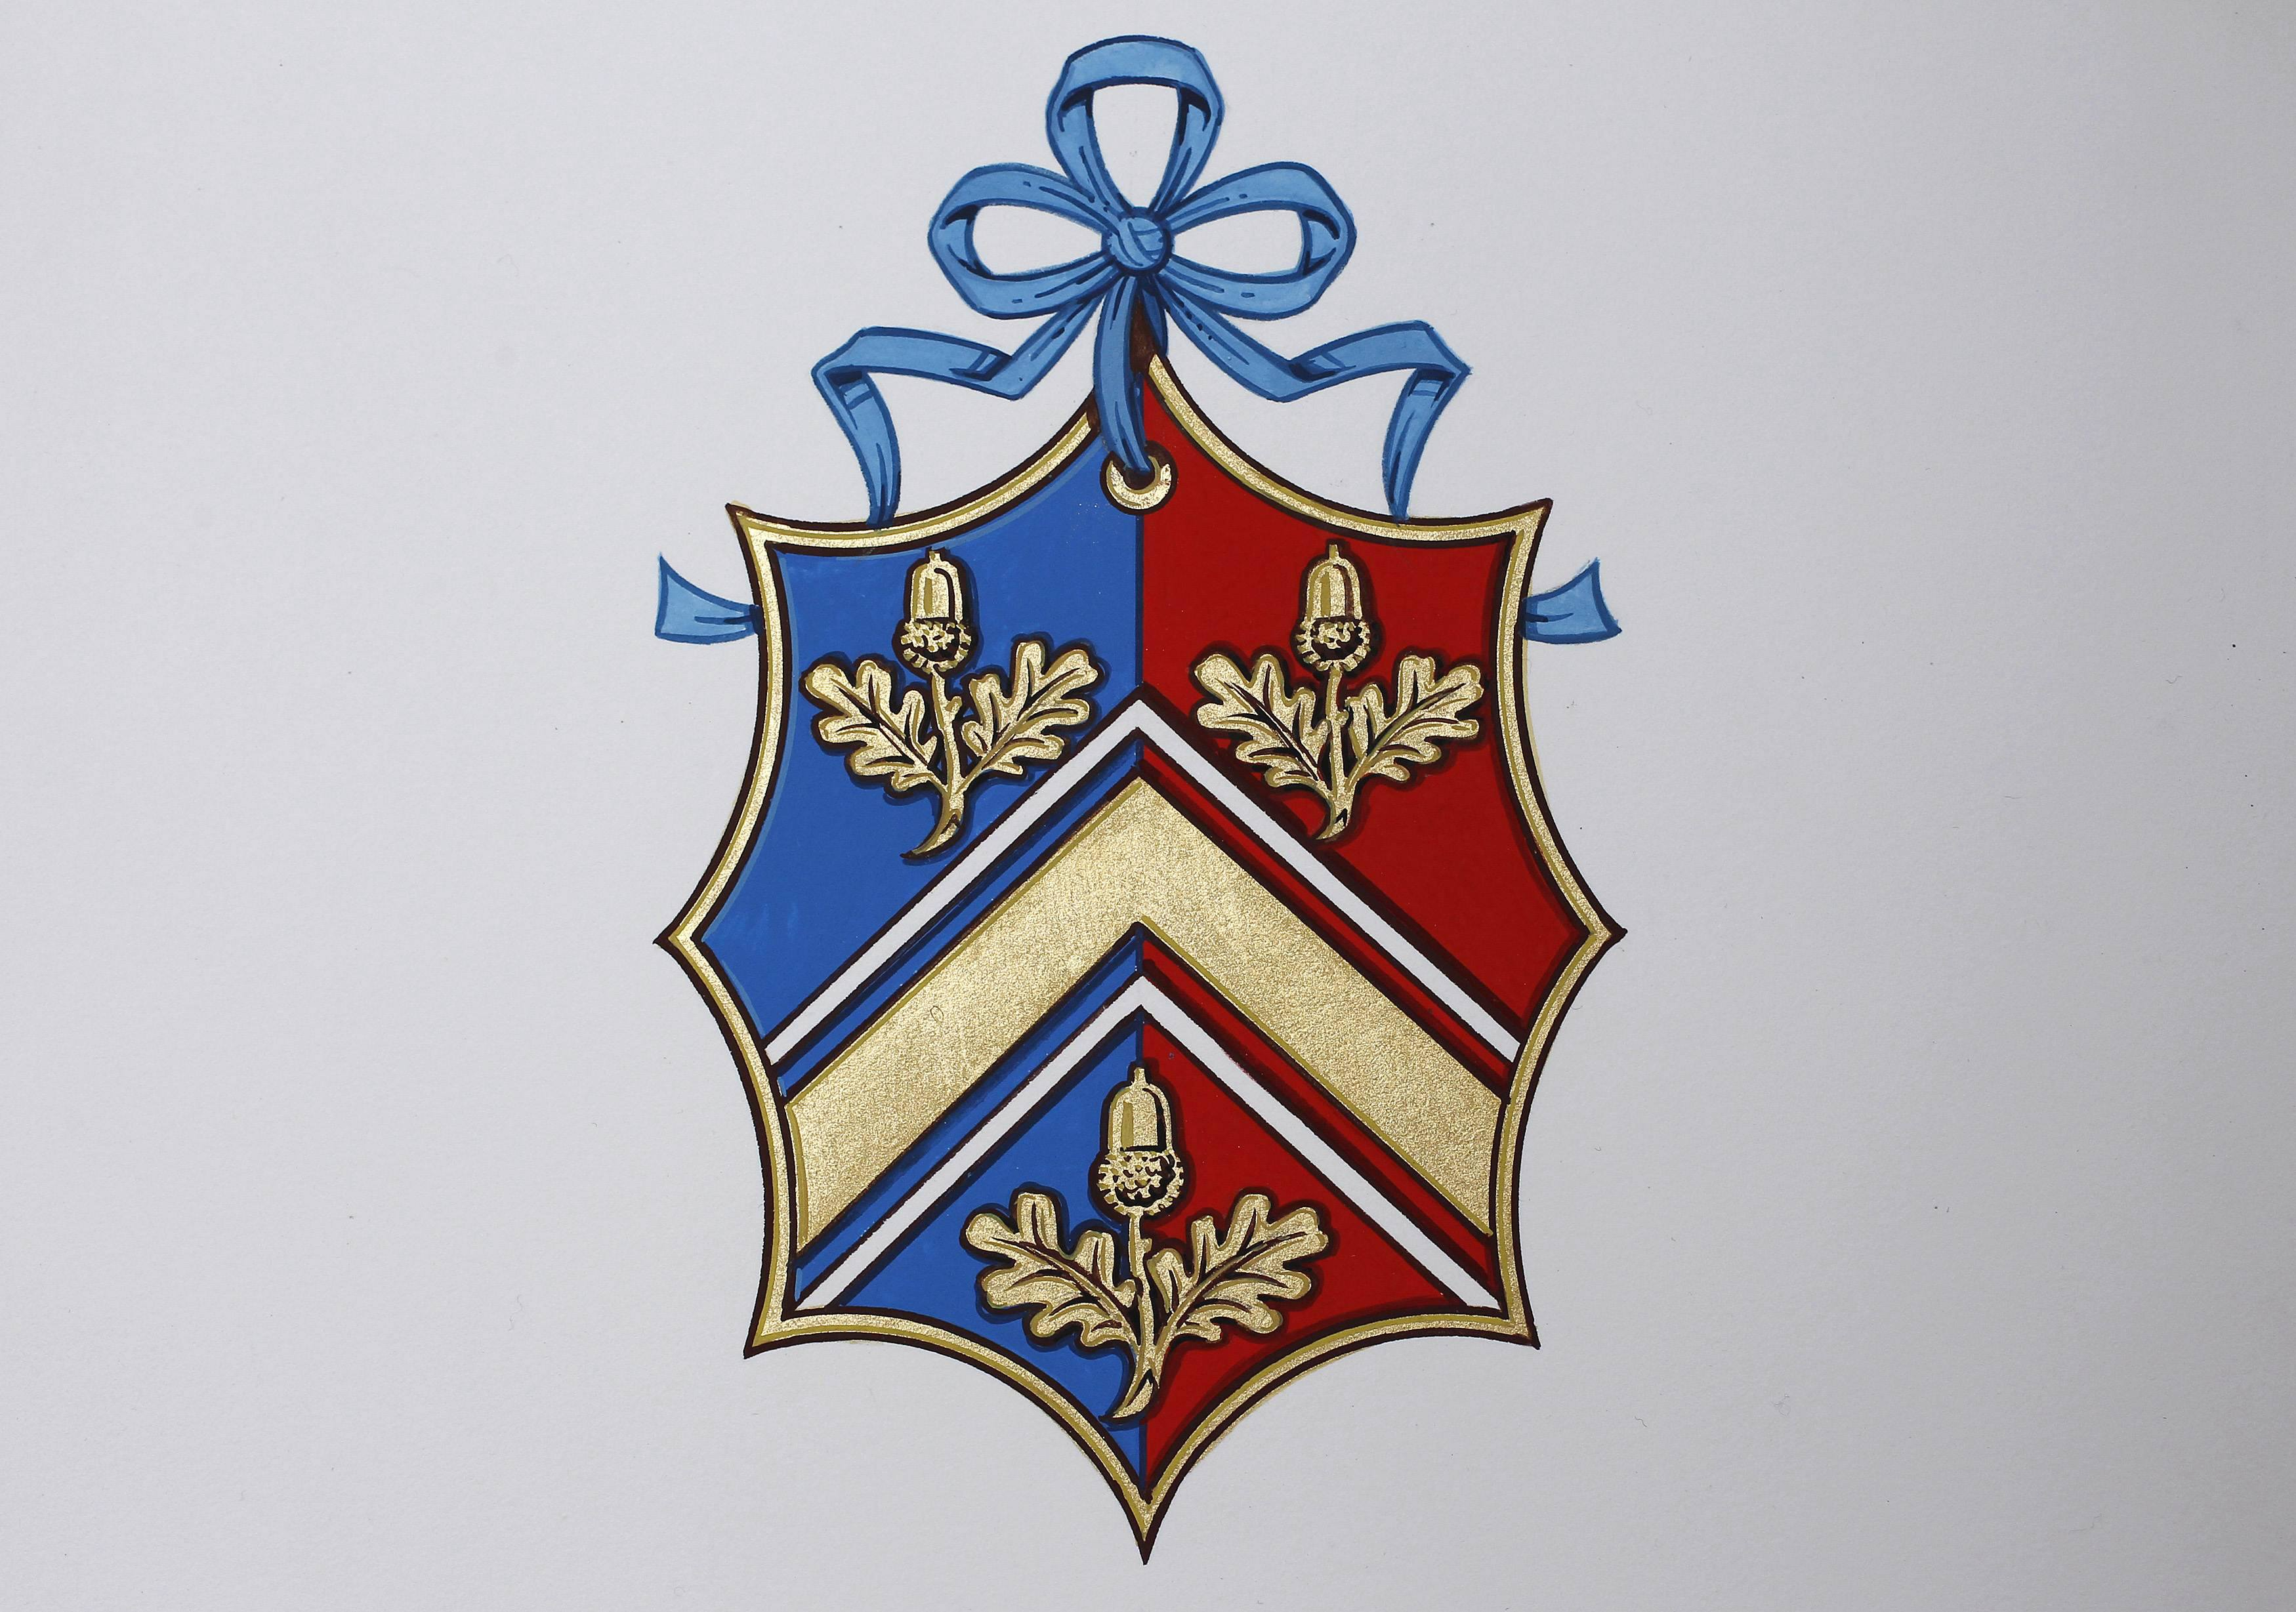 The new Coat of Arms for Kate Middleton'